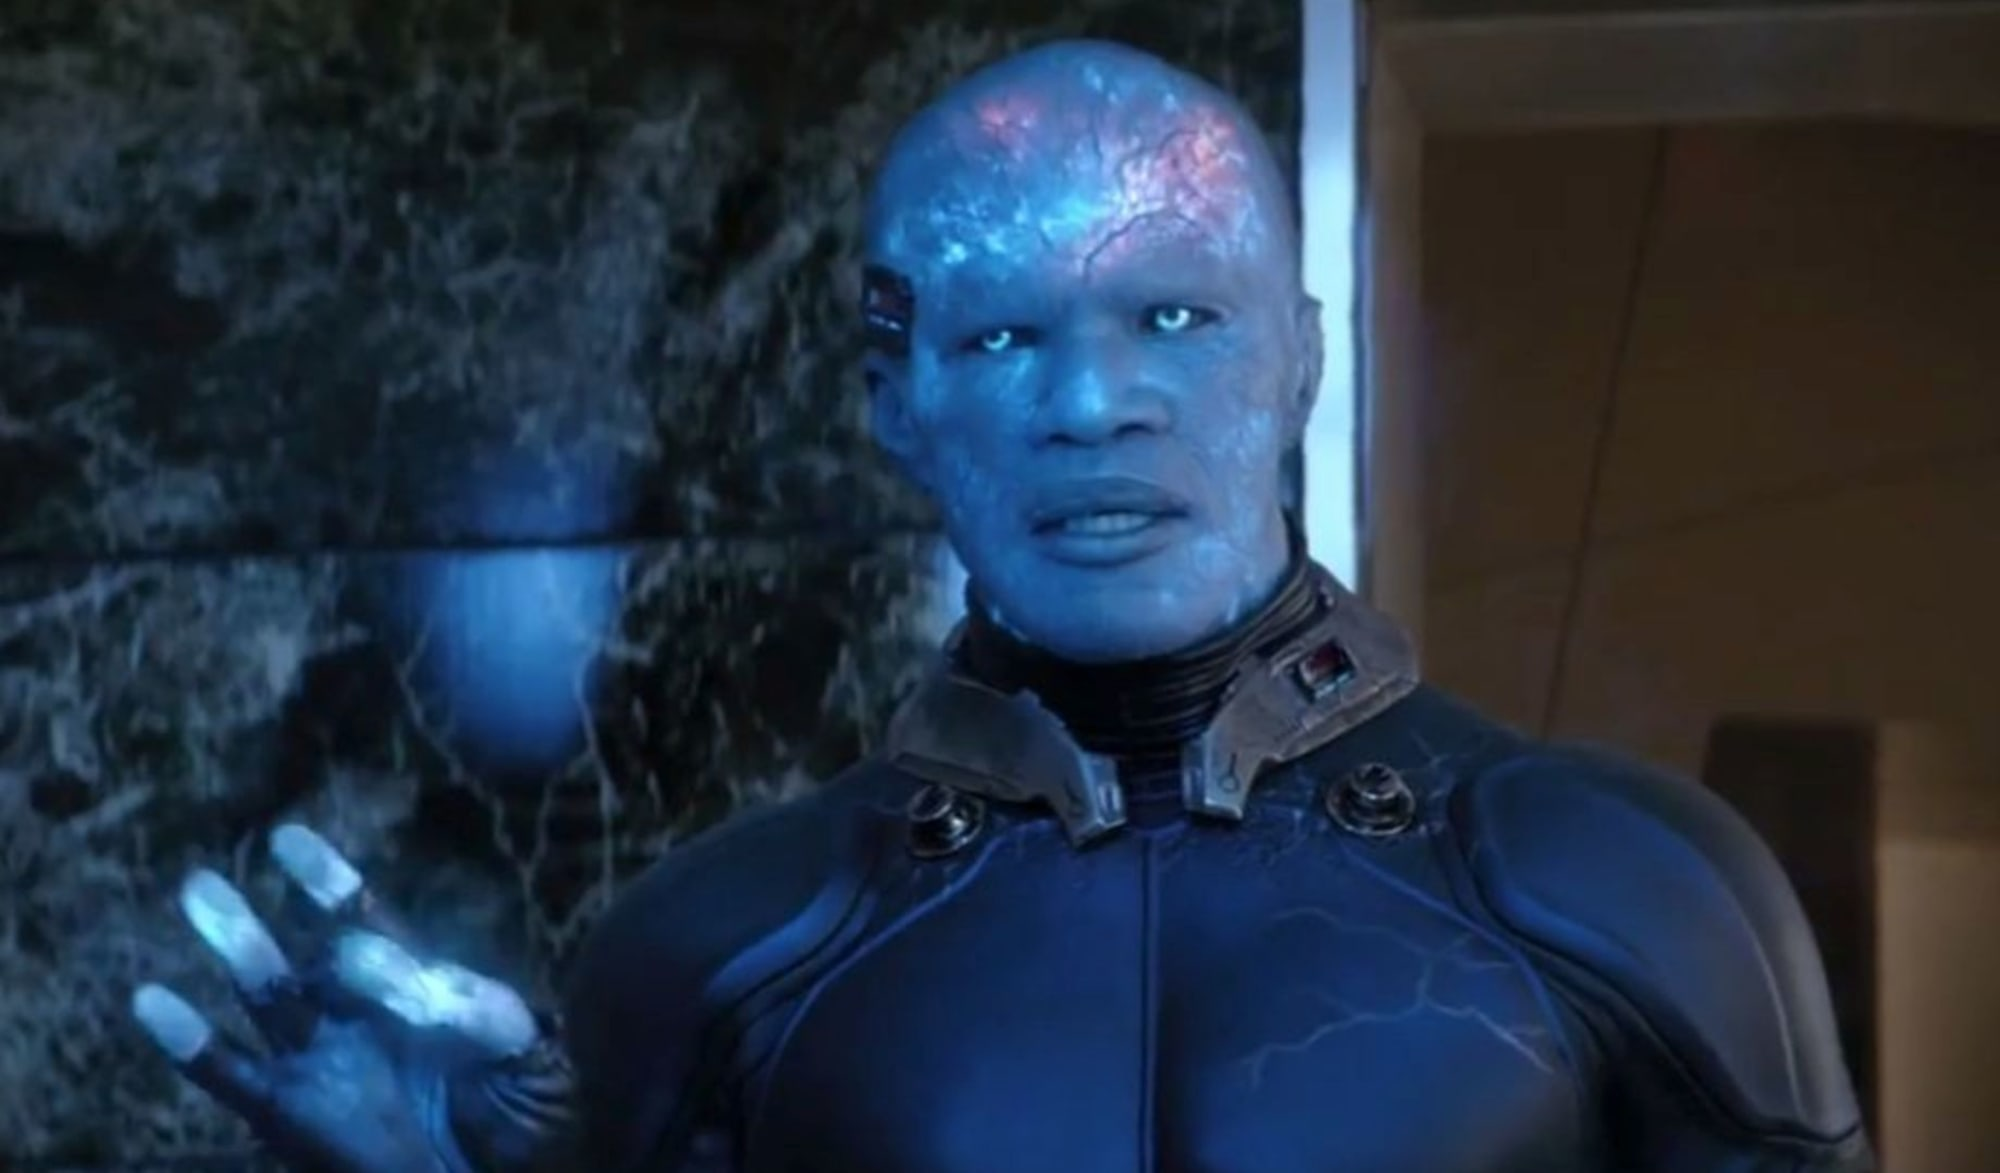 Jamie Fox as Electro was wildly unconvincing and was completely ill fit for the character.